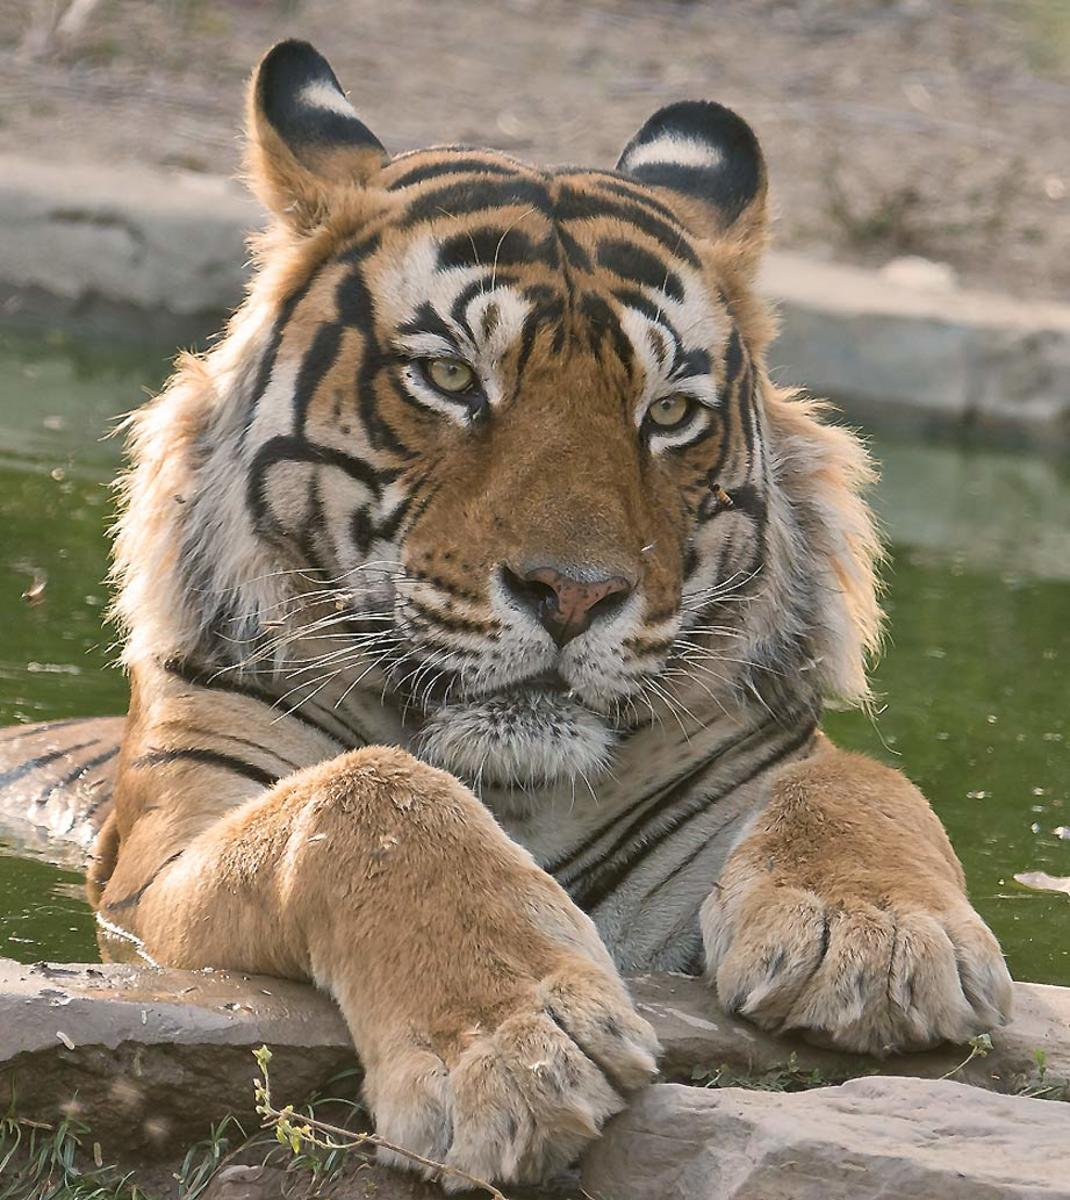 Tiger cooling off at Ranthambhore National Park in India